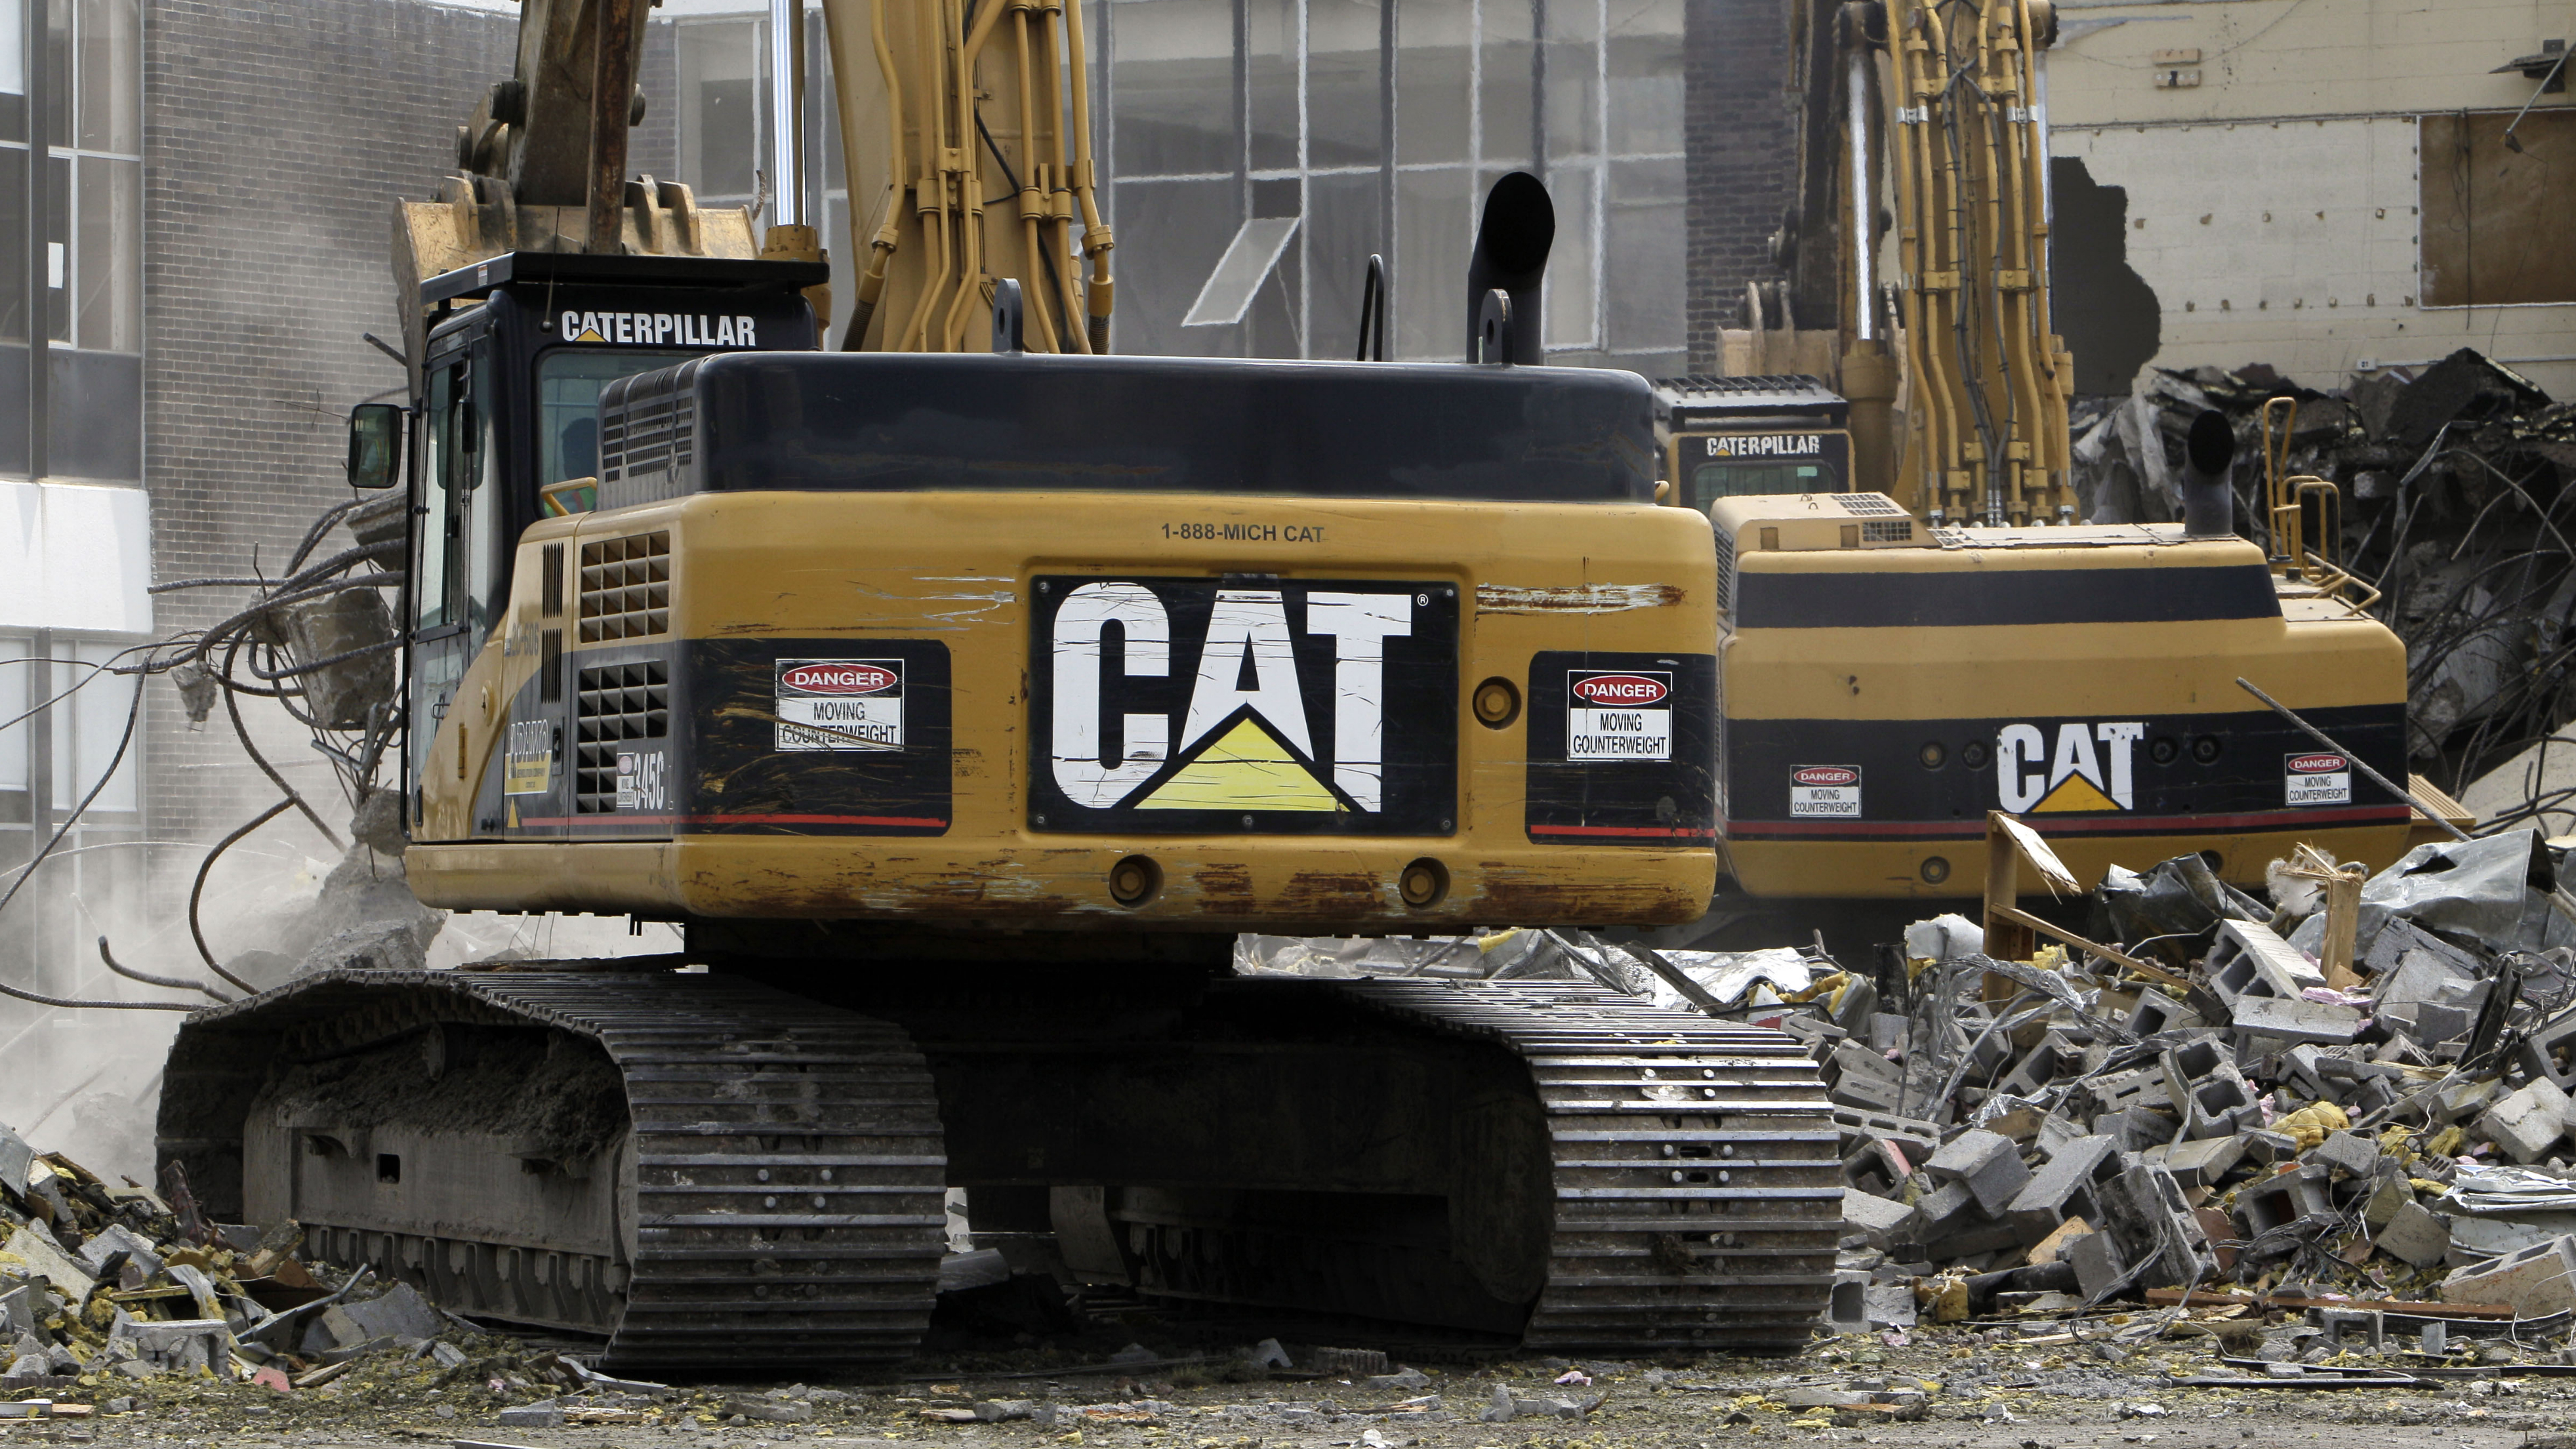 Caterpillar's earnings have been crushed by a $580 million accounting scandal in China.